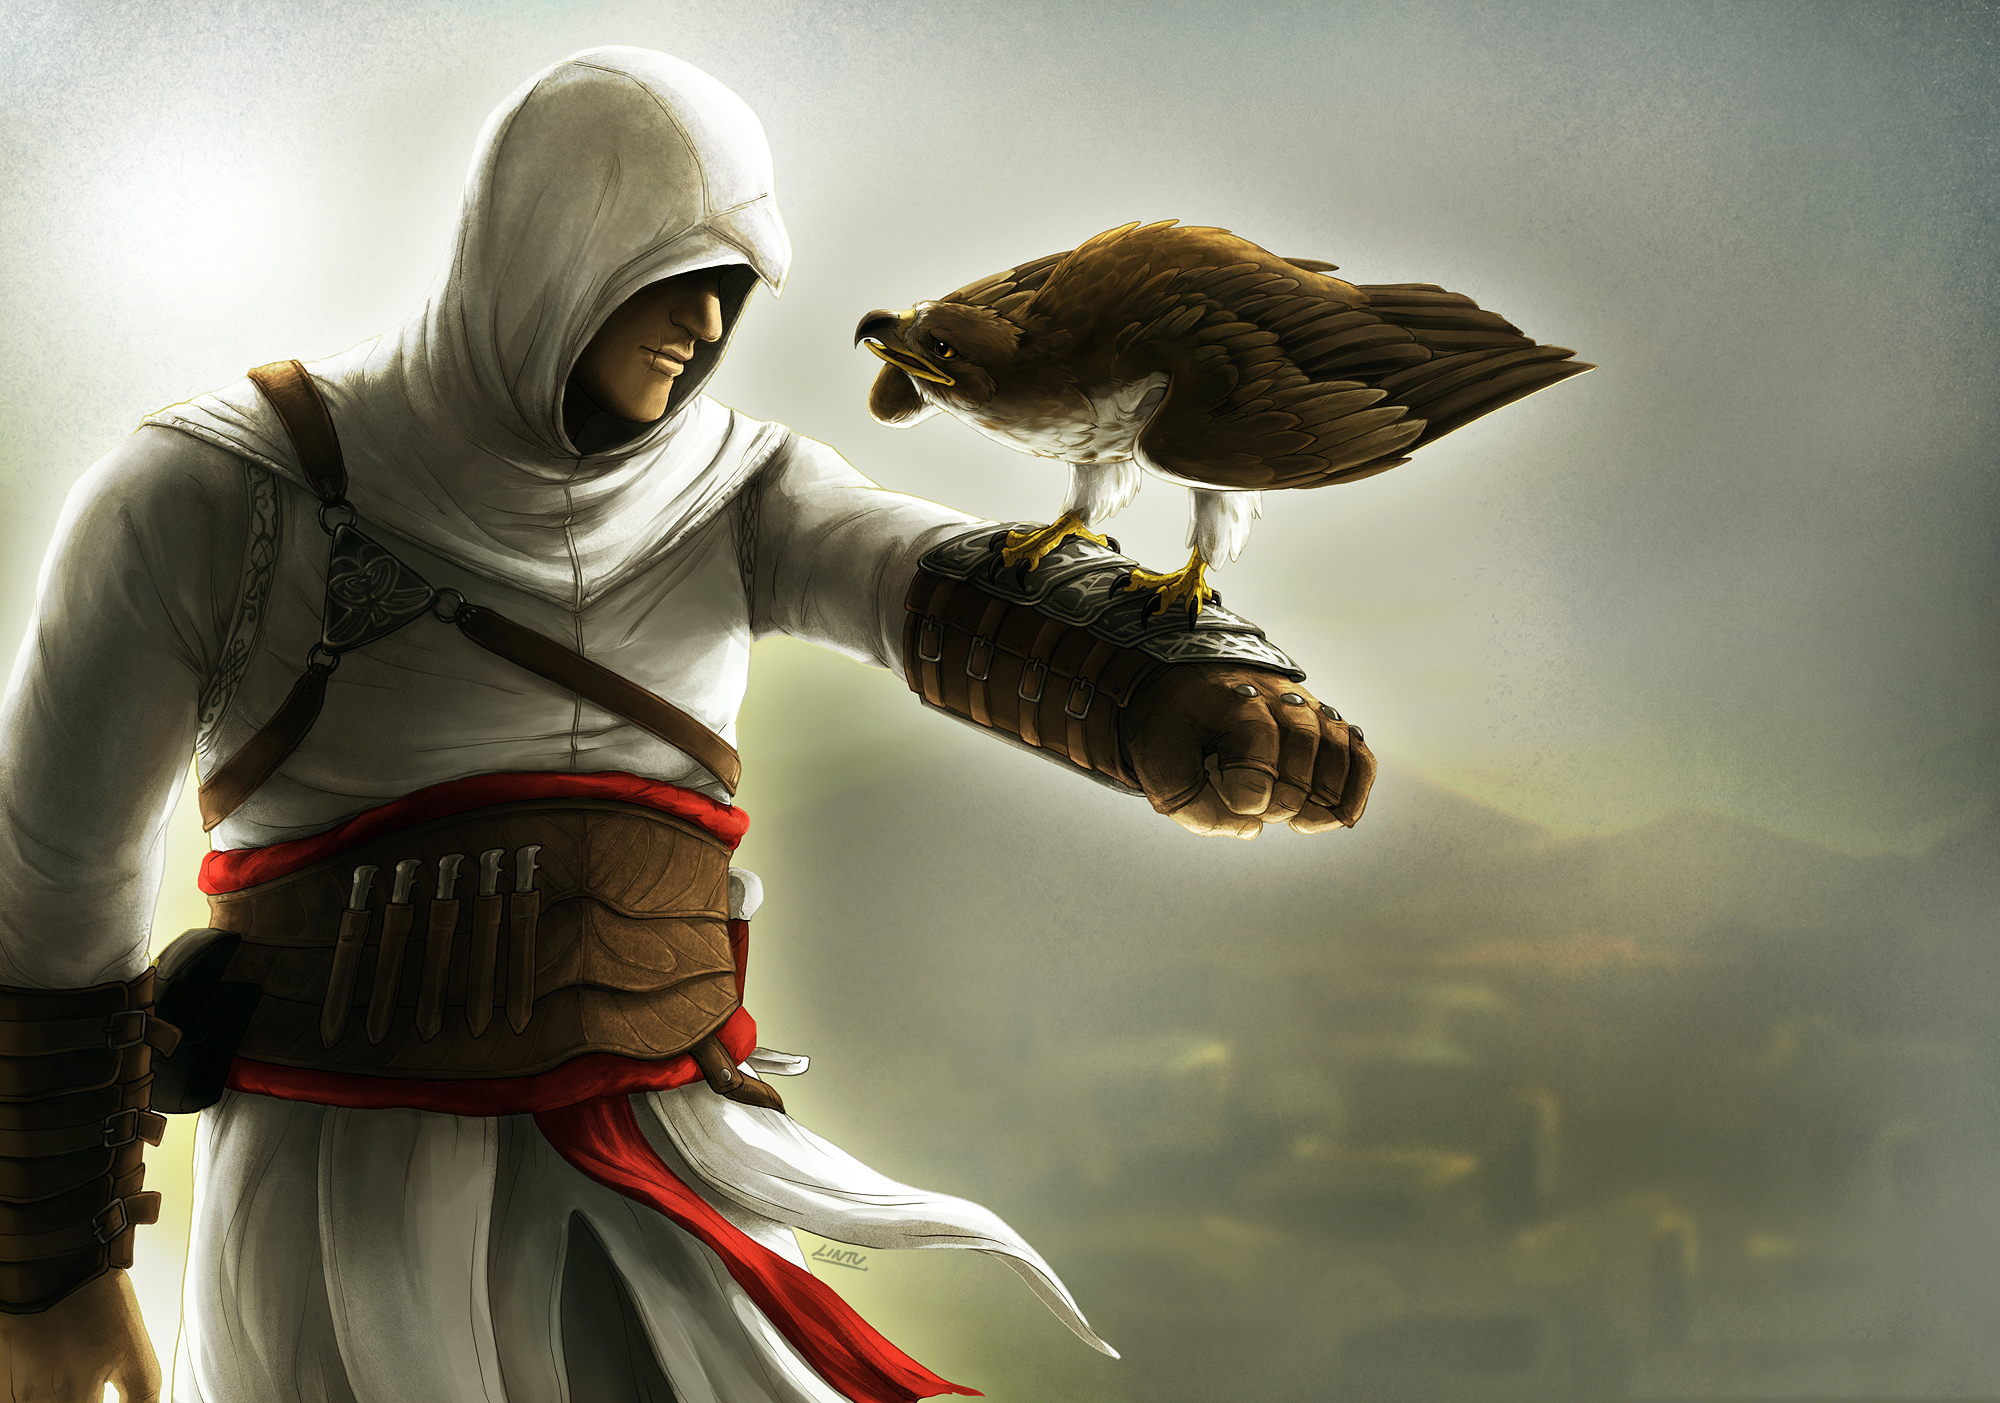 High Definition Photo Of Assassins Creed Wallpaper Of Altair